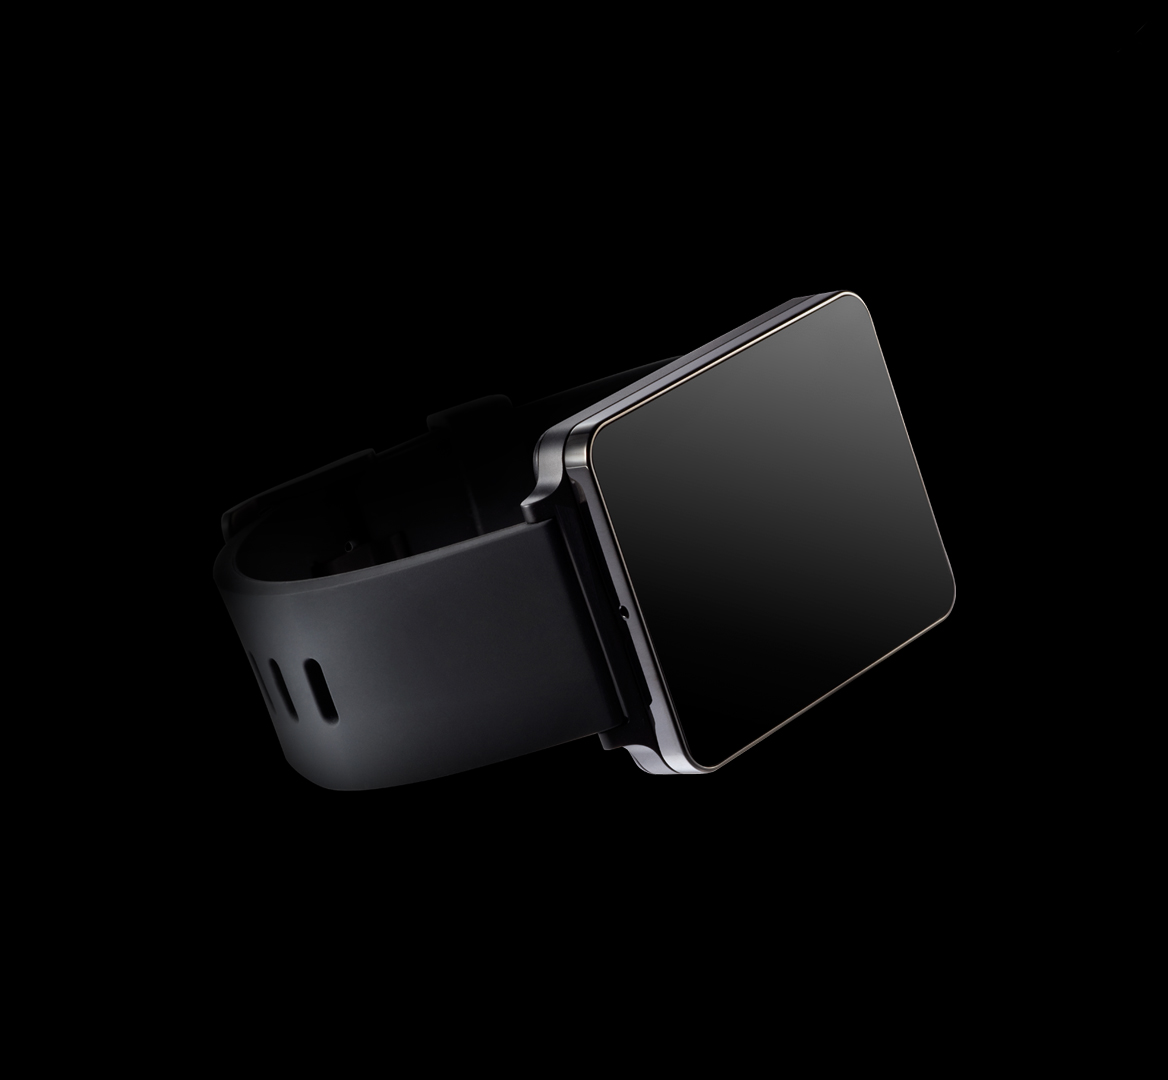 lg-g-watch-android-wear-video-02.jpg